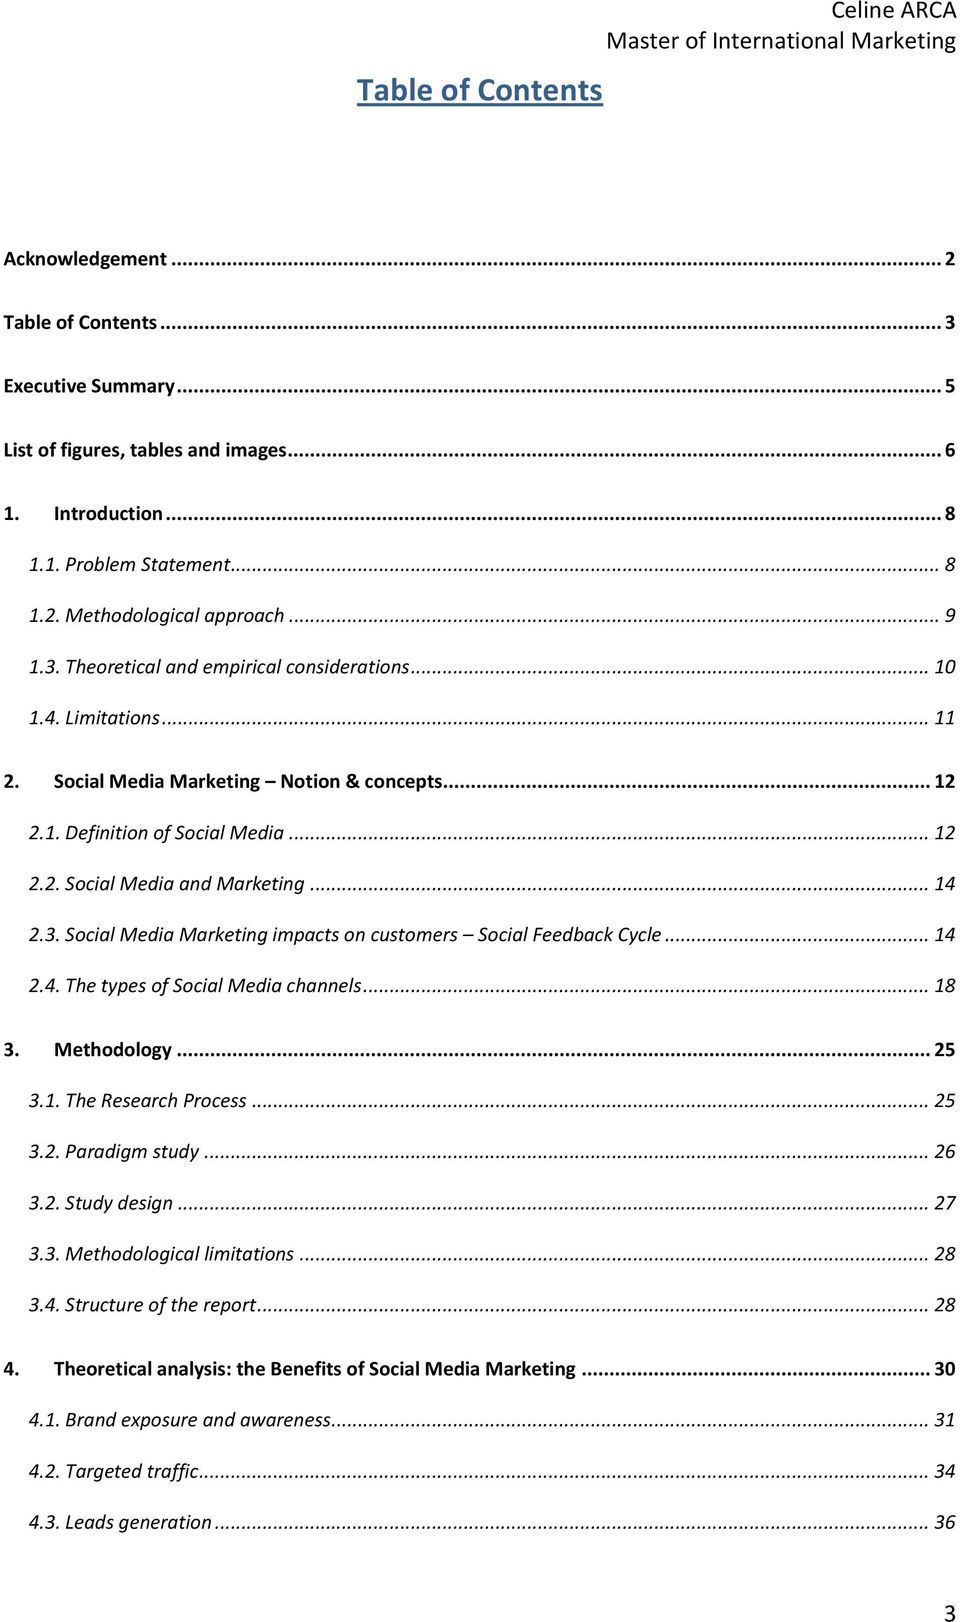 .. 14 2.3. Social Media Marketing impacts on customers Social Feedback Cycle... 14 2.4. The types of Social Media channels... 18 3. Methodology... 25 3.1. The Research Process... 25 3.2. Paradigm study.